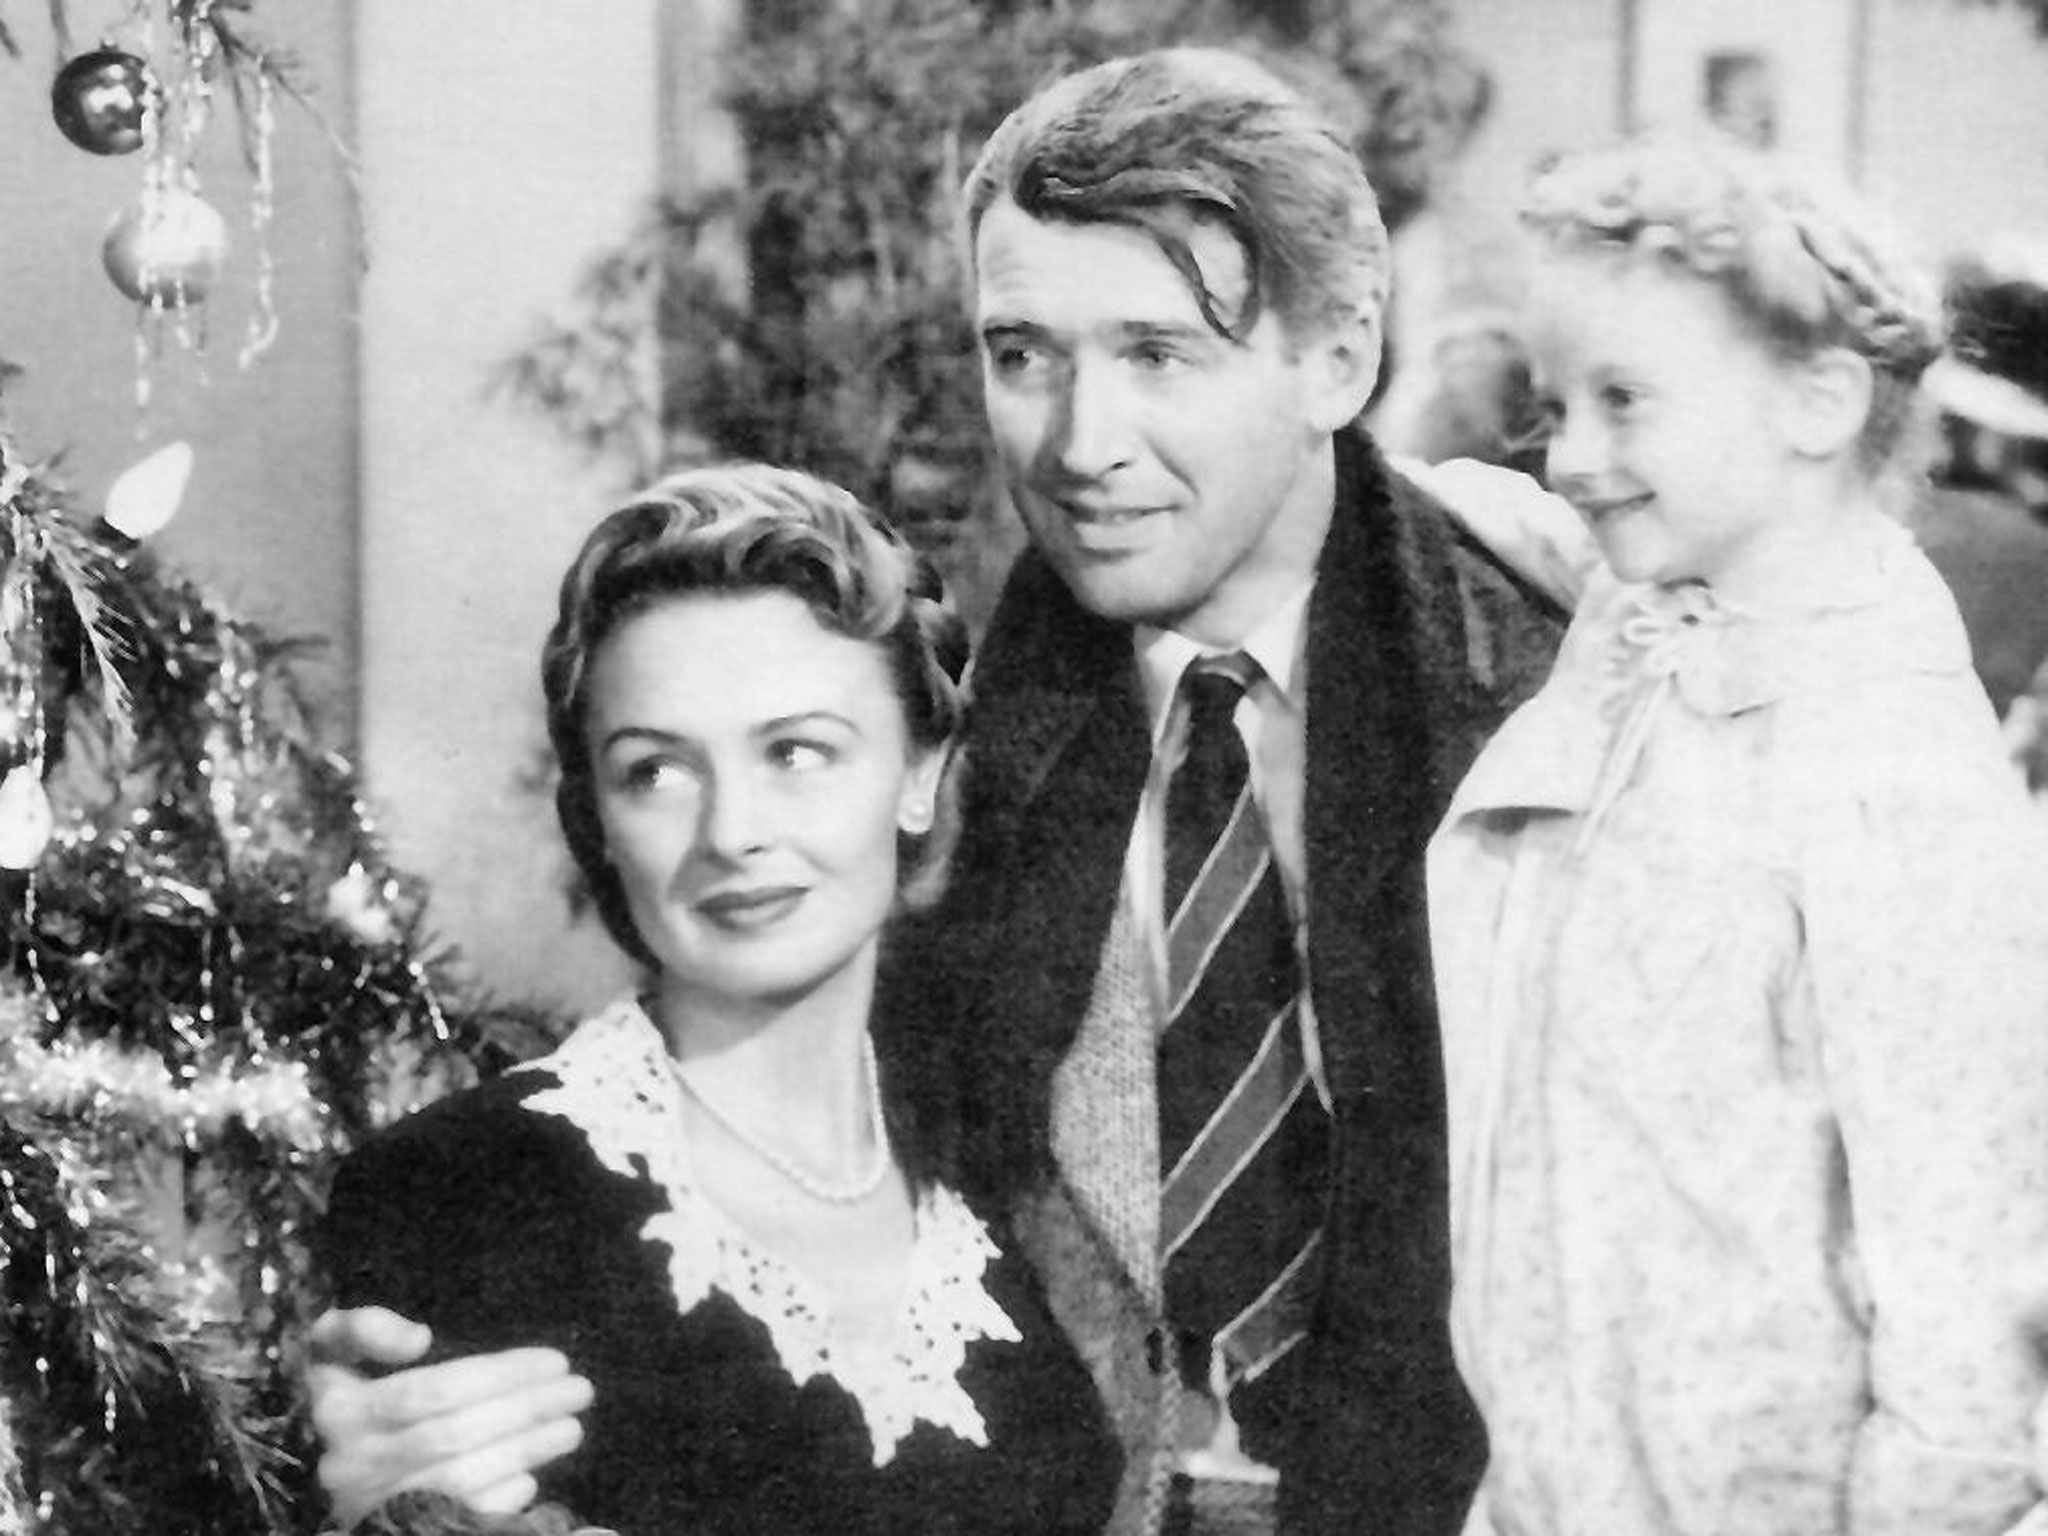 Promotional image for the film It's a Wonderful Life